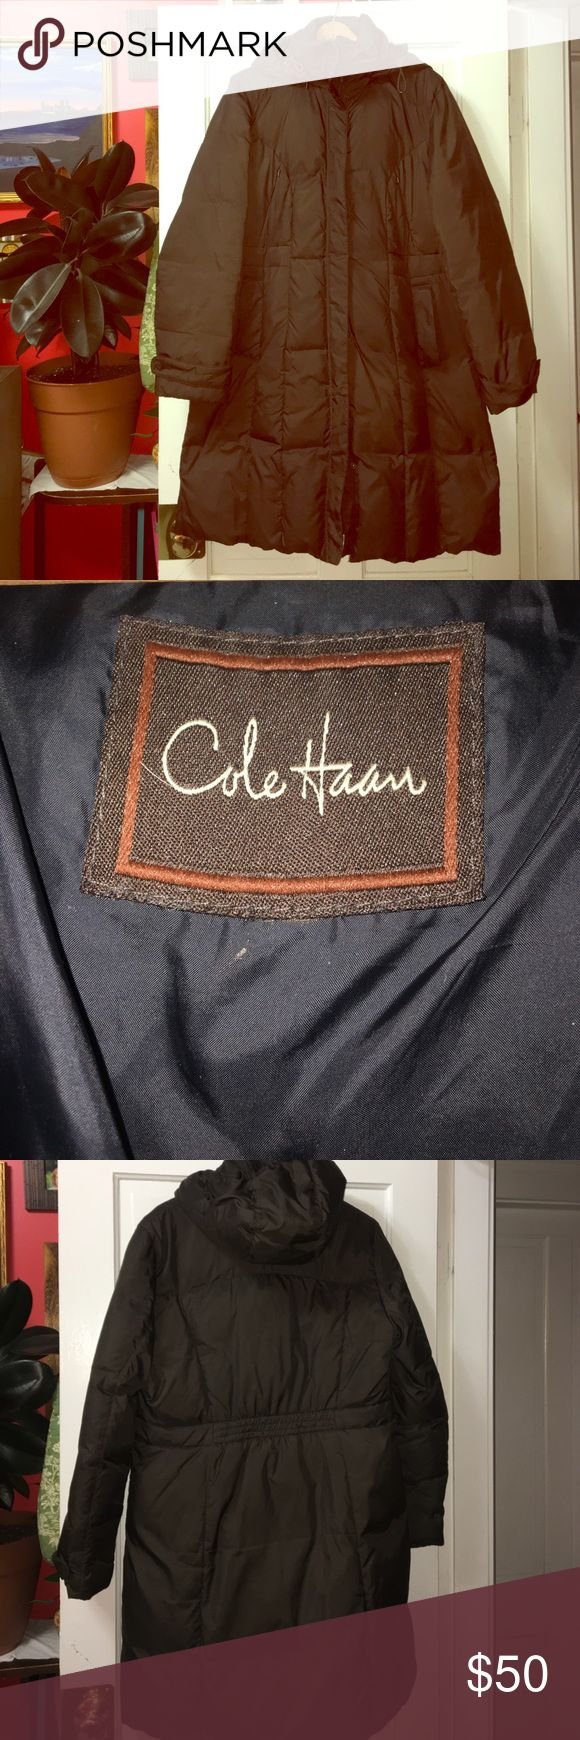 Cole Haan Down Coat Really warm winter coat that falls mid thigh. The size isn't listed on the coat  but I believe it was a 16. The good is also down filled for added warmth Cole Haan Jackets & Coats Puffers